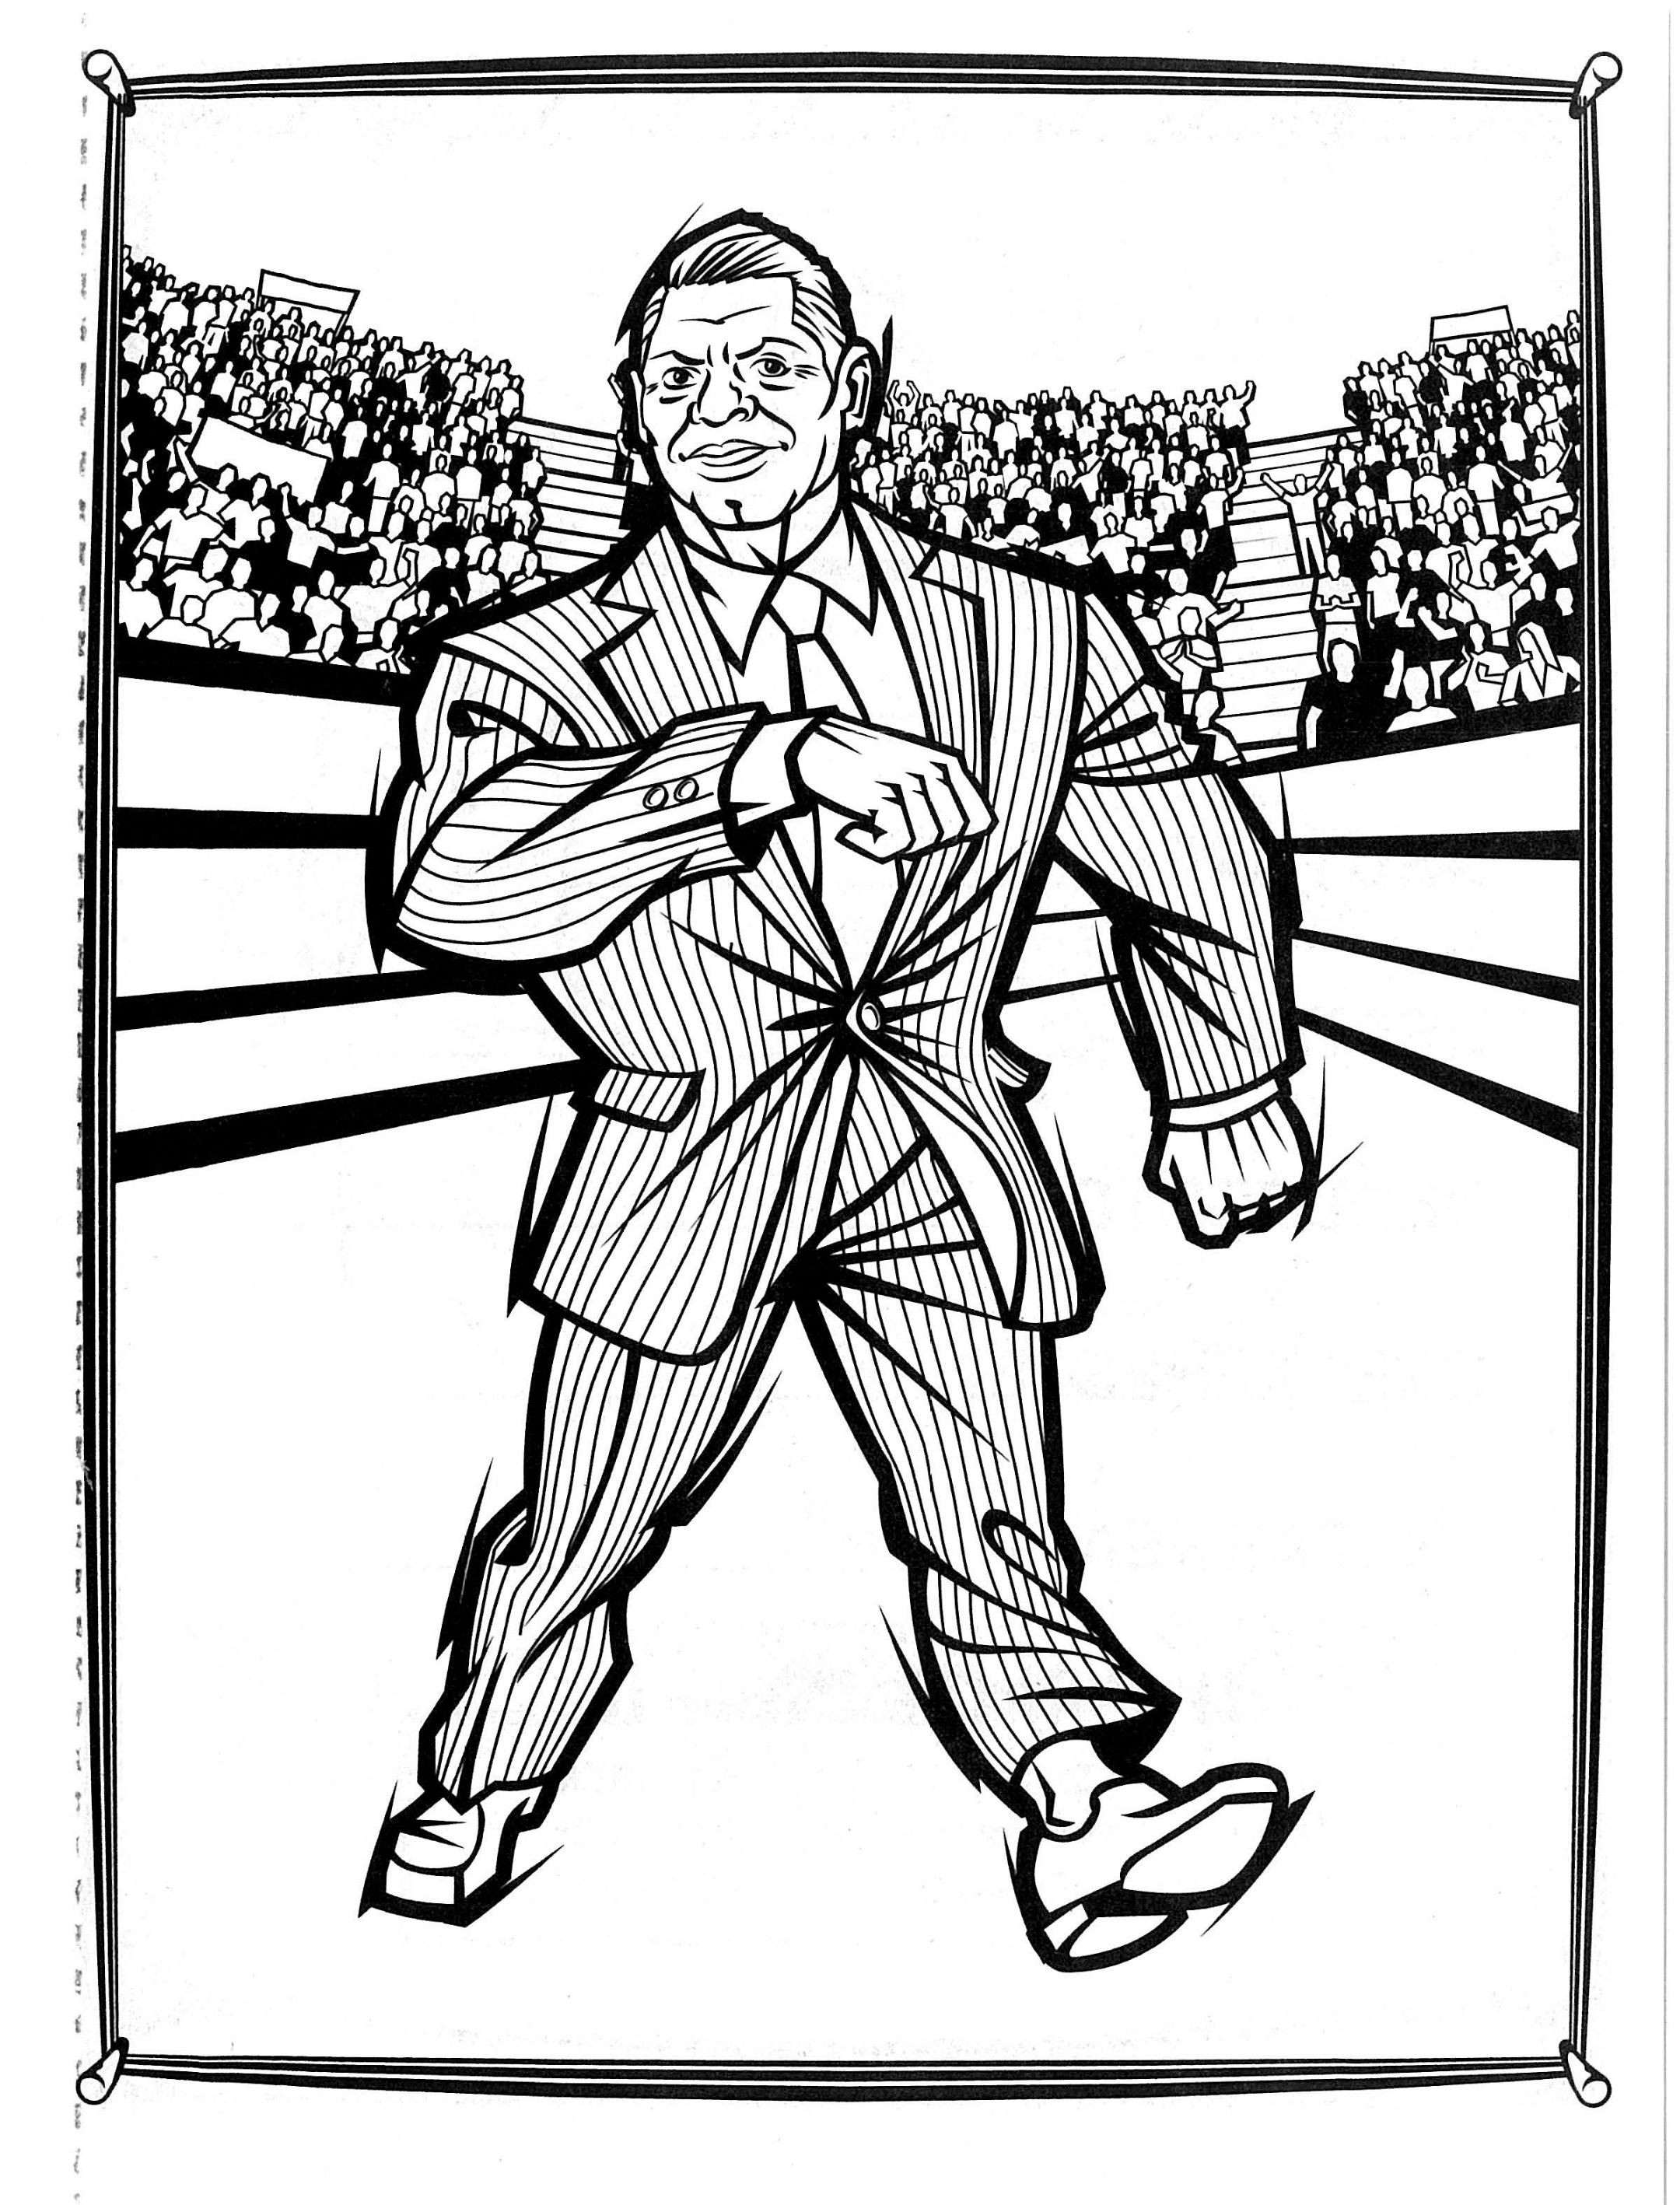 wwe colouring pictures wwe wrestler coloring pages coloring home pictures wwe colouring